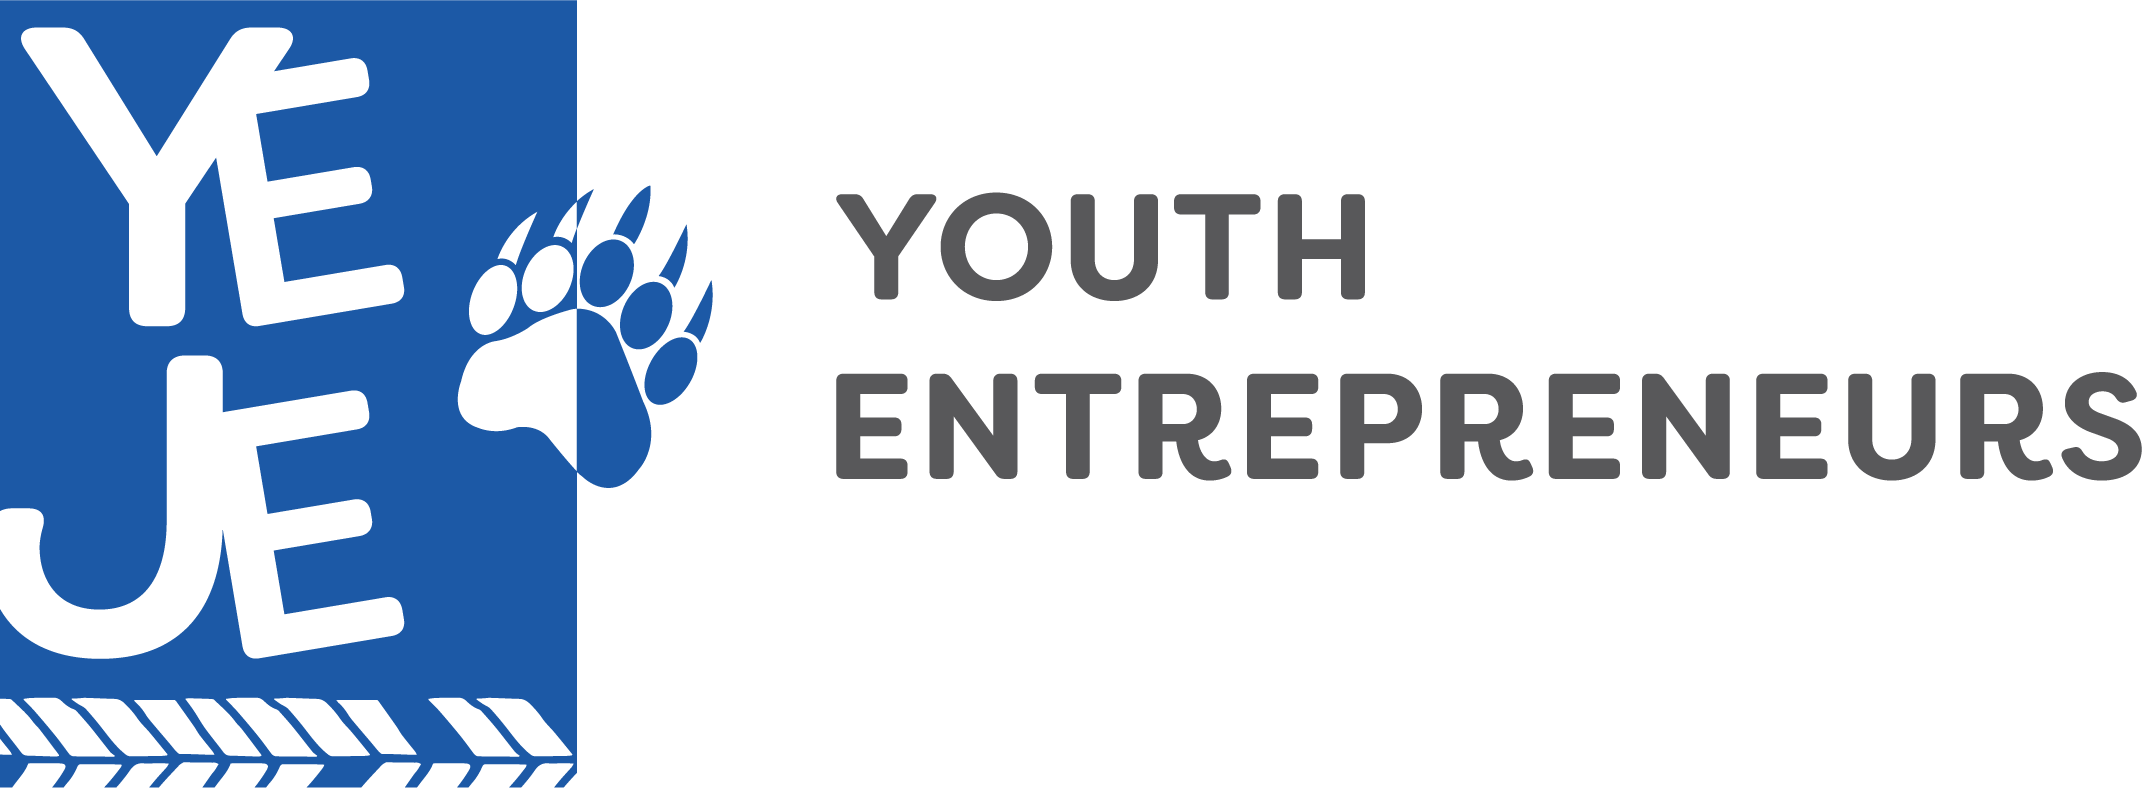 Youth entrepreneurship logo